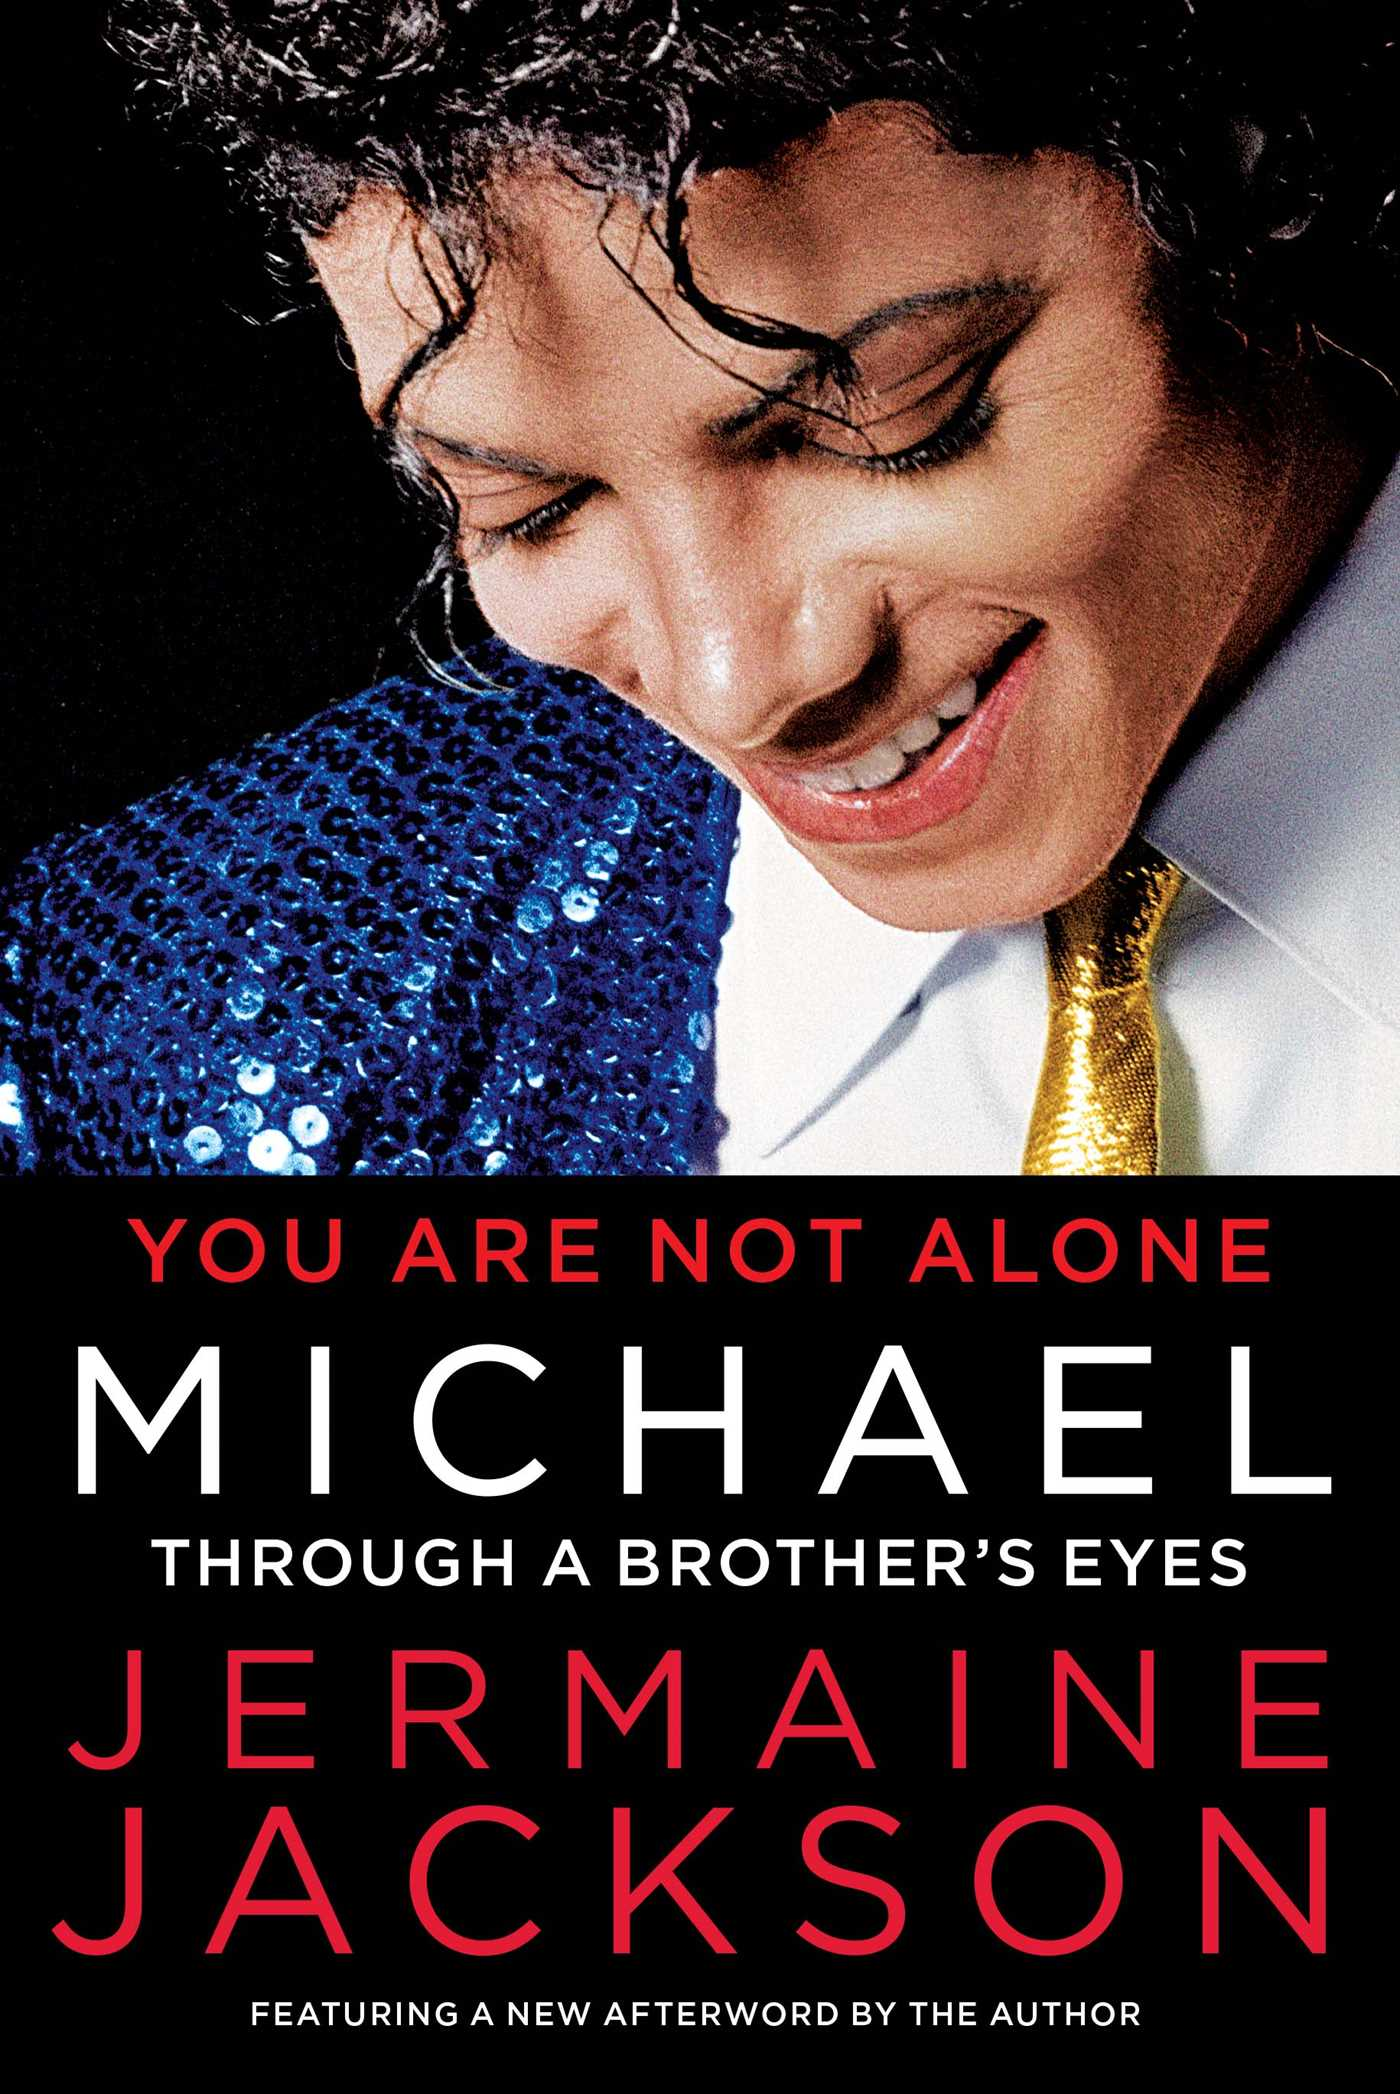 Book Cover Image (jpg): You Are Not Alone